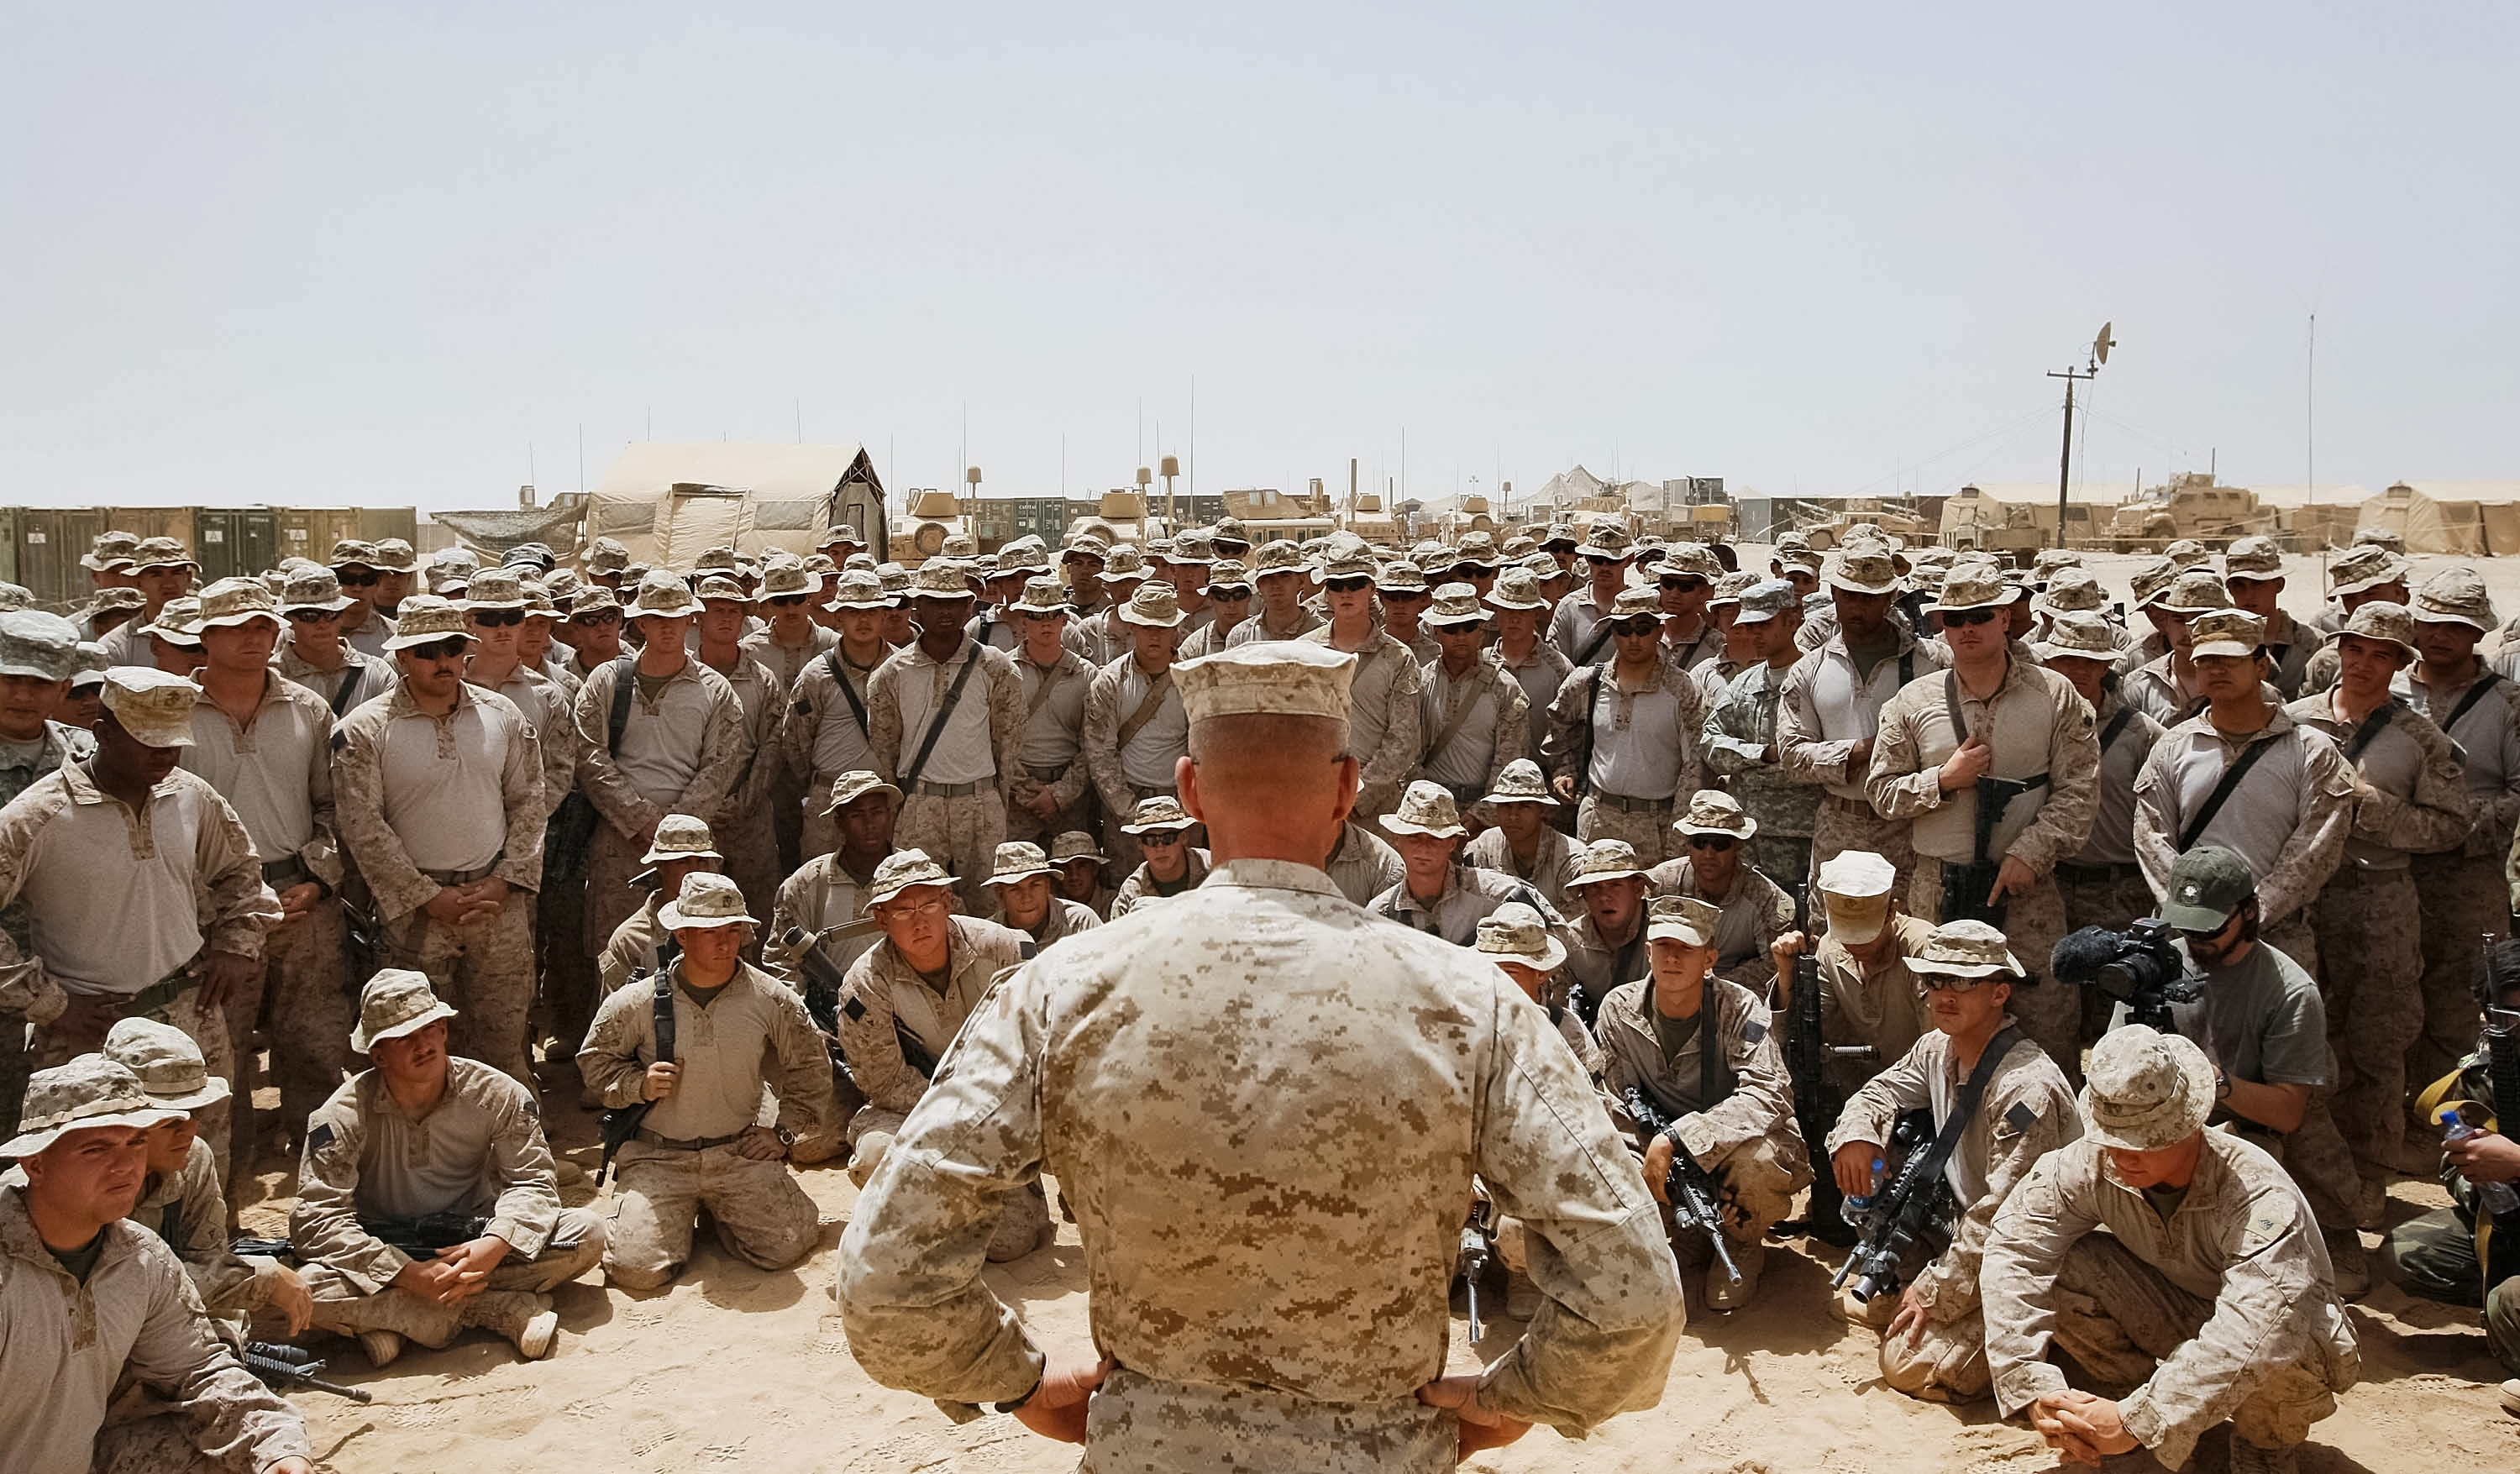 HELMAND PROVINCE- JULY 1: U.S. Lt. Col. Christian Cabaniss speaks to his Marines at Camp Dwyer on July 1, 2009 in Helmand Province, Afghanistan.The Marines are part of a stepped up effort by American troops fighting Taliban fighters in Southern Afghanistan. (Photo by Joe Raedle/Getty Images)